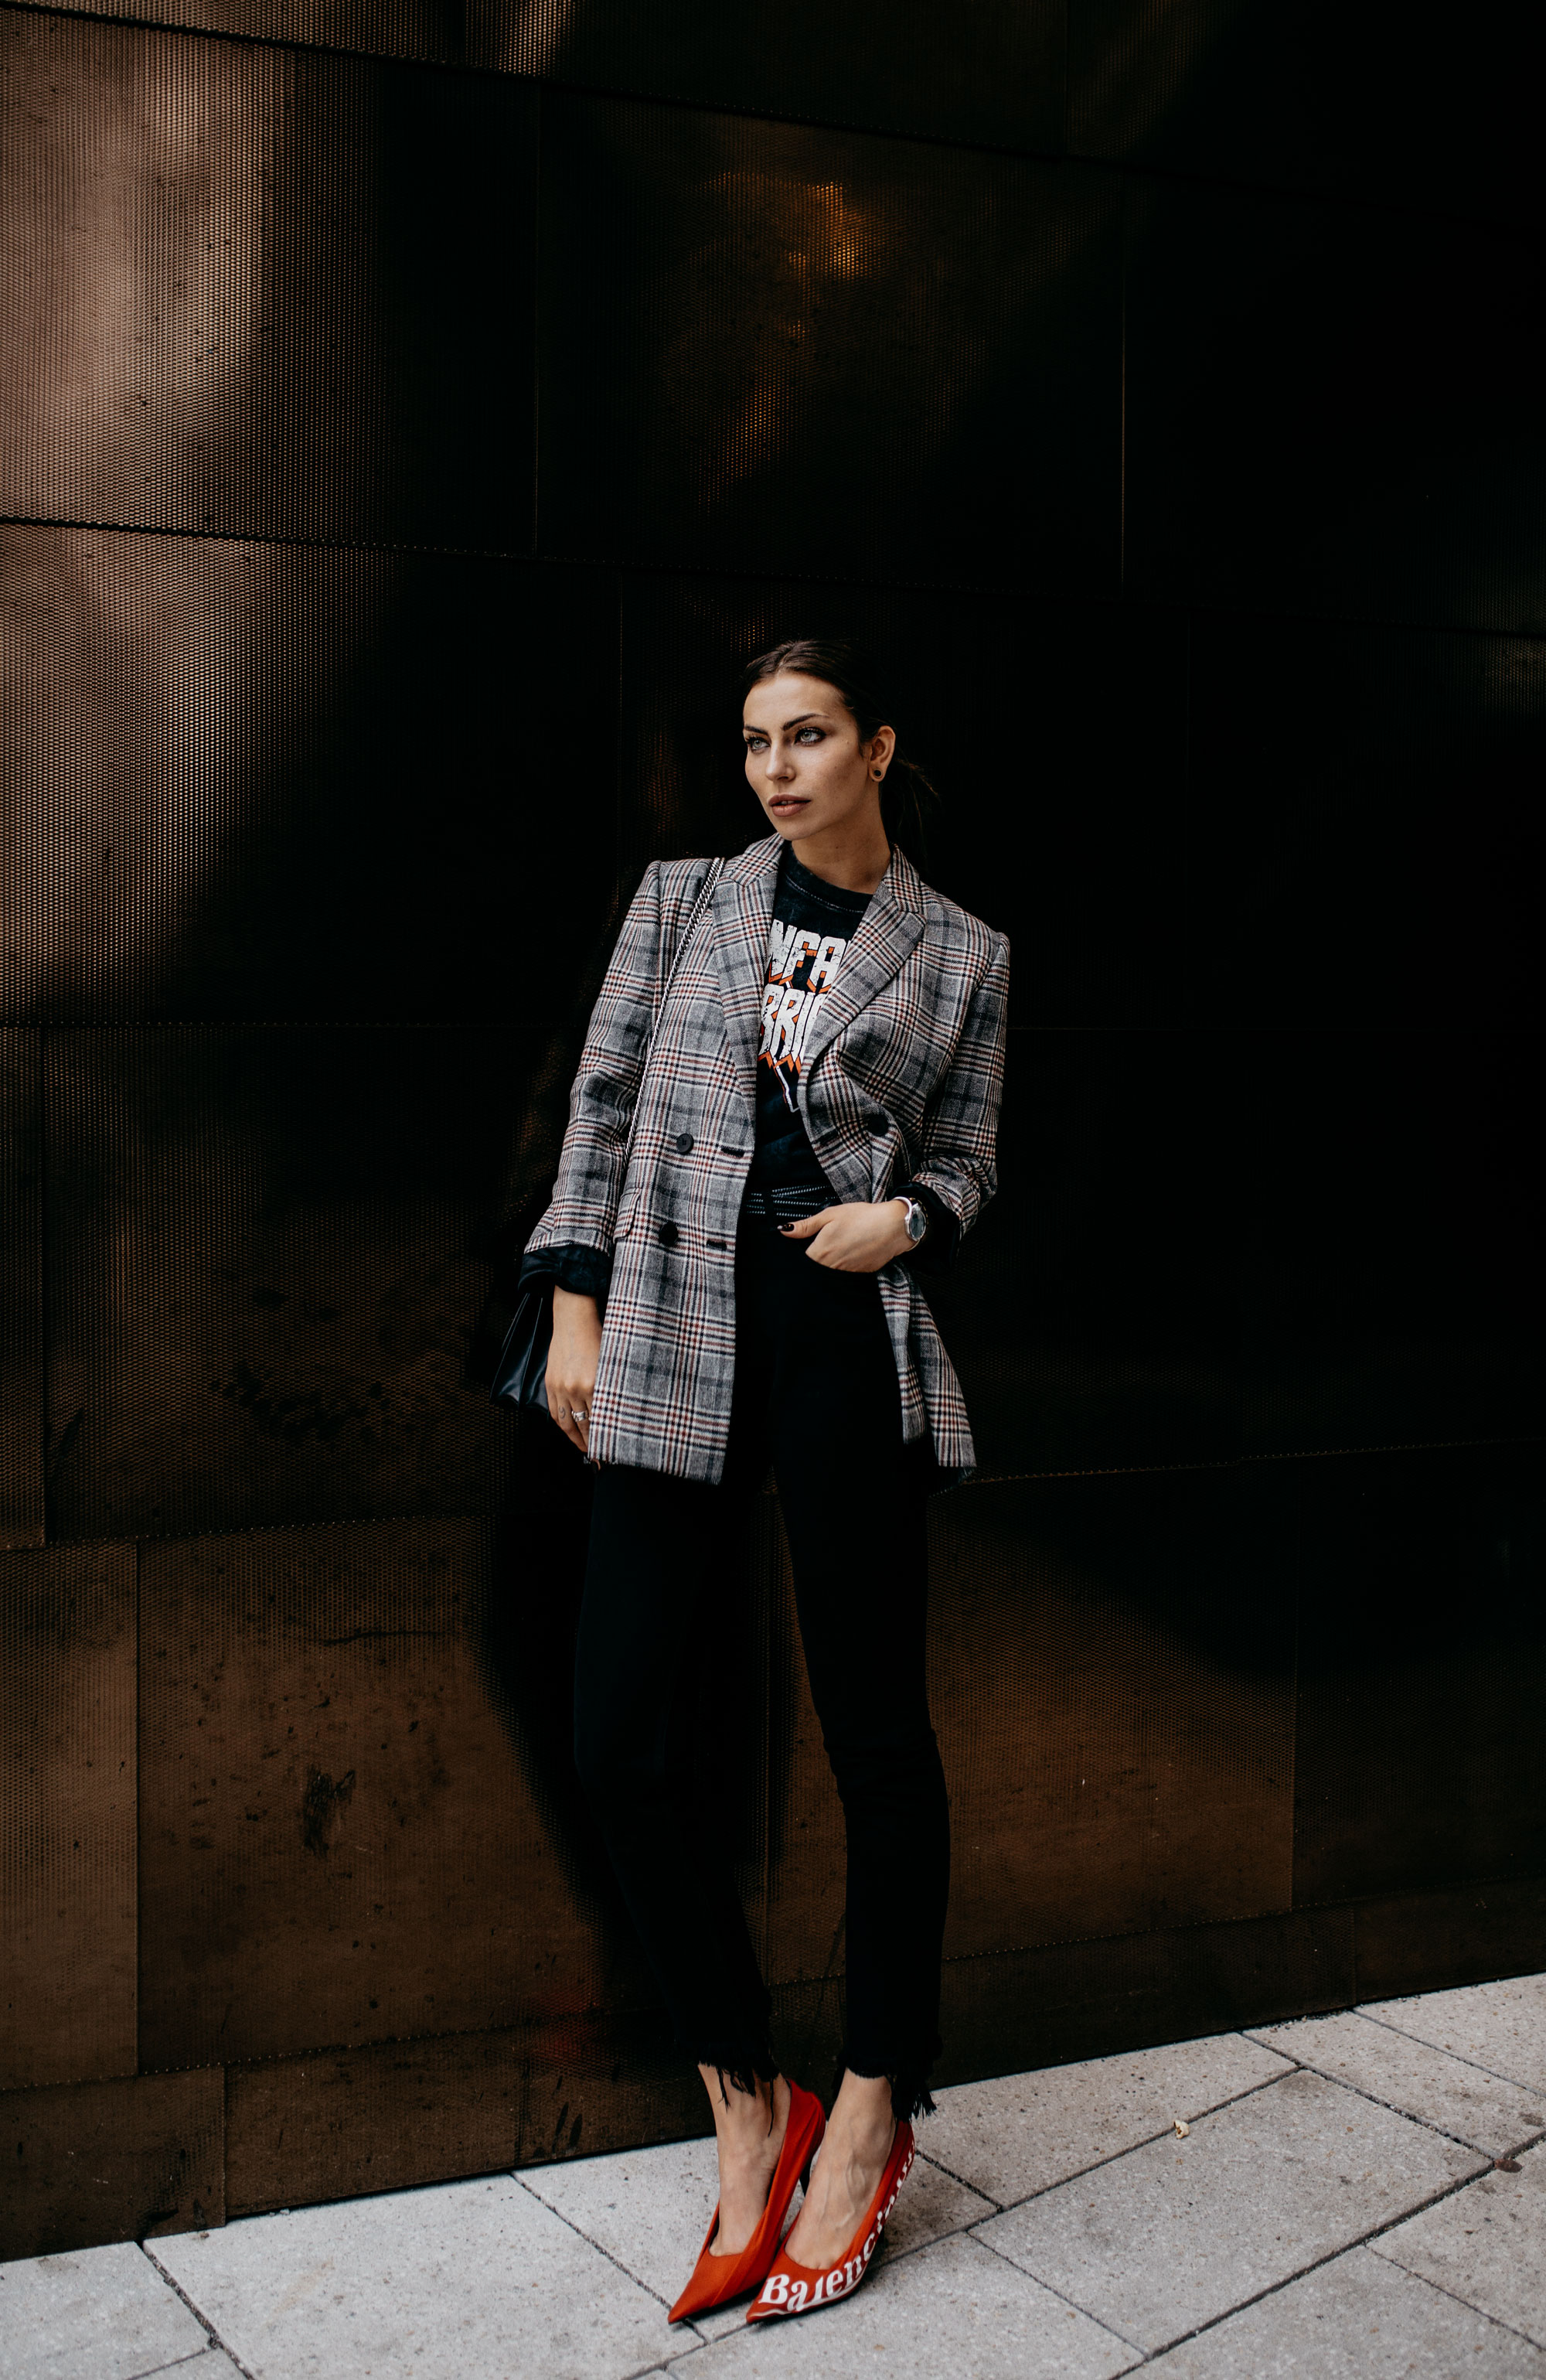 Vogue Night in Breuninger in Stuttgart | Fashion & Outfit | style: elegant, cool, edgy, office, stylish | red pumps from Balenciaga, Band Shirt, checked blazer from Sandro and black jeans from mih | Masha Sedgwick & Lisa Banholzer from Blogger Bazaar | Matchalatte Podcast